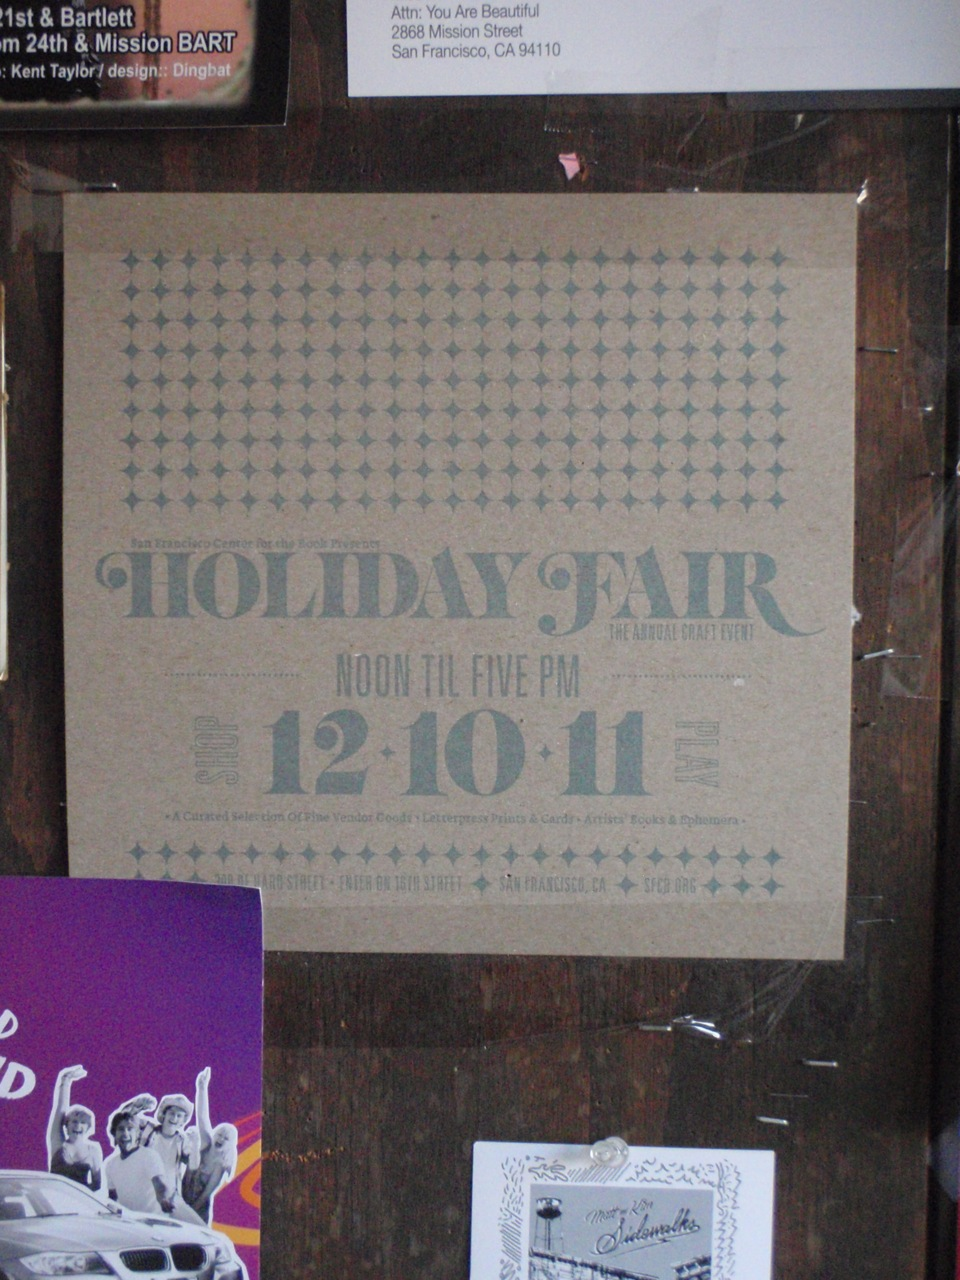 Pretty Holiday Poster seen in the Mission District